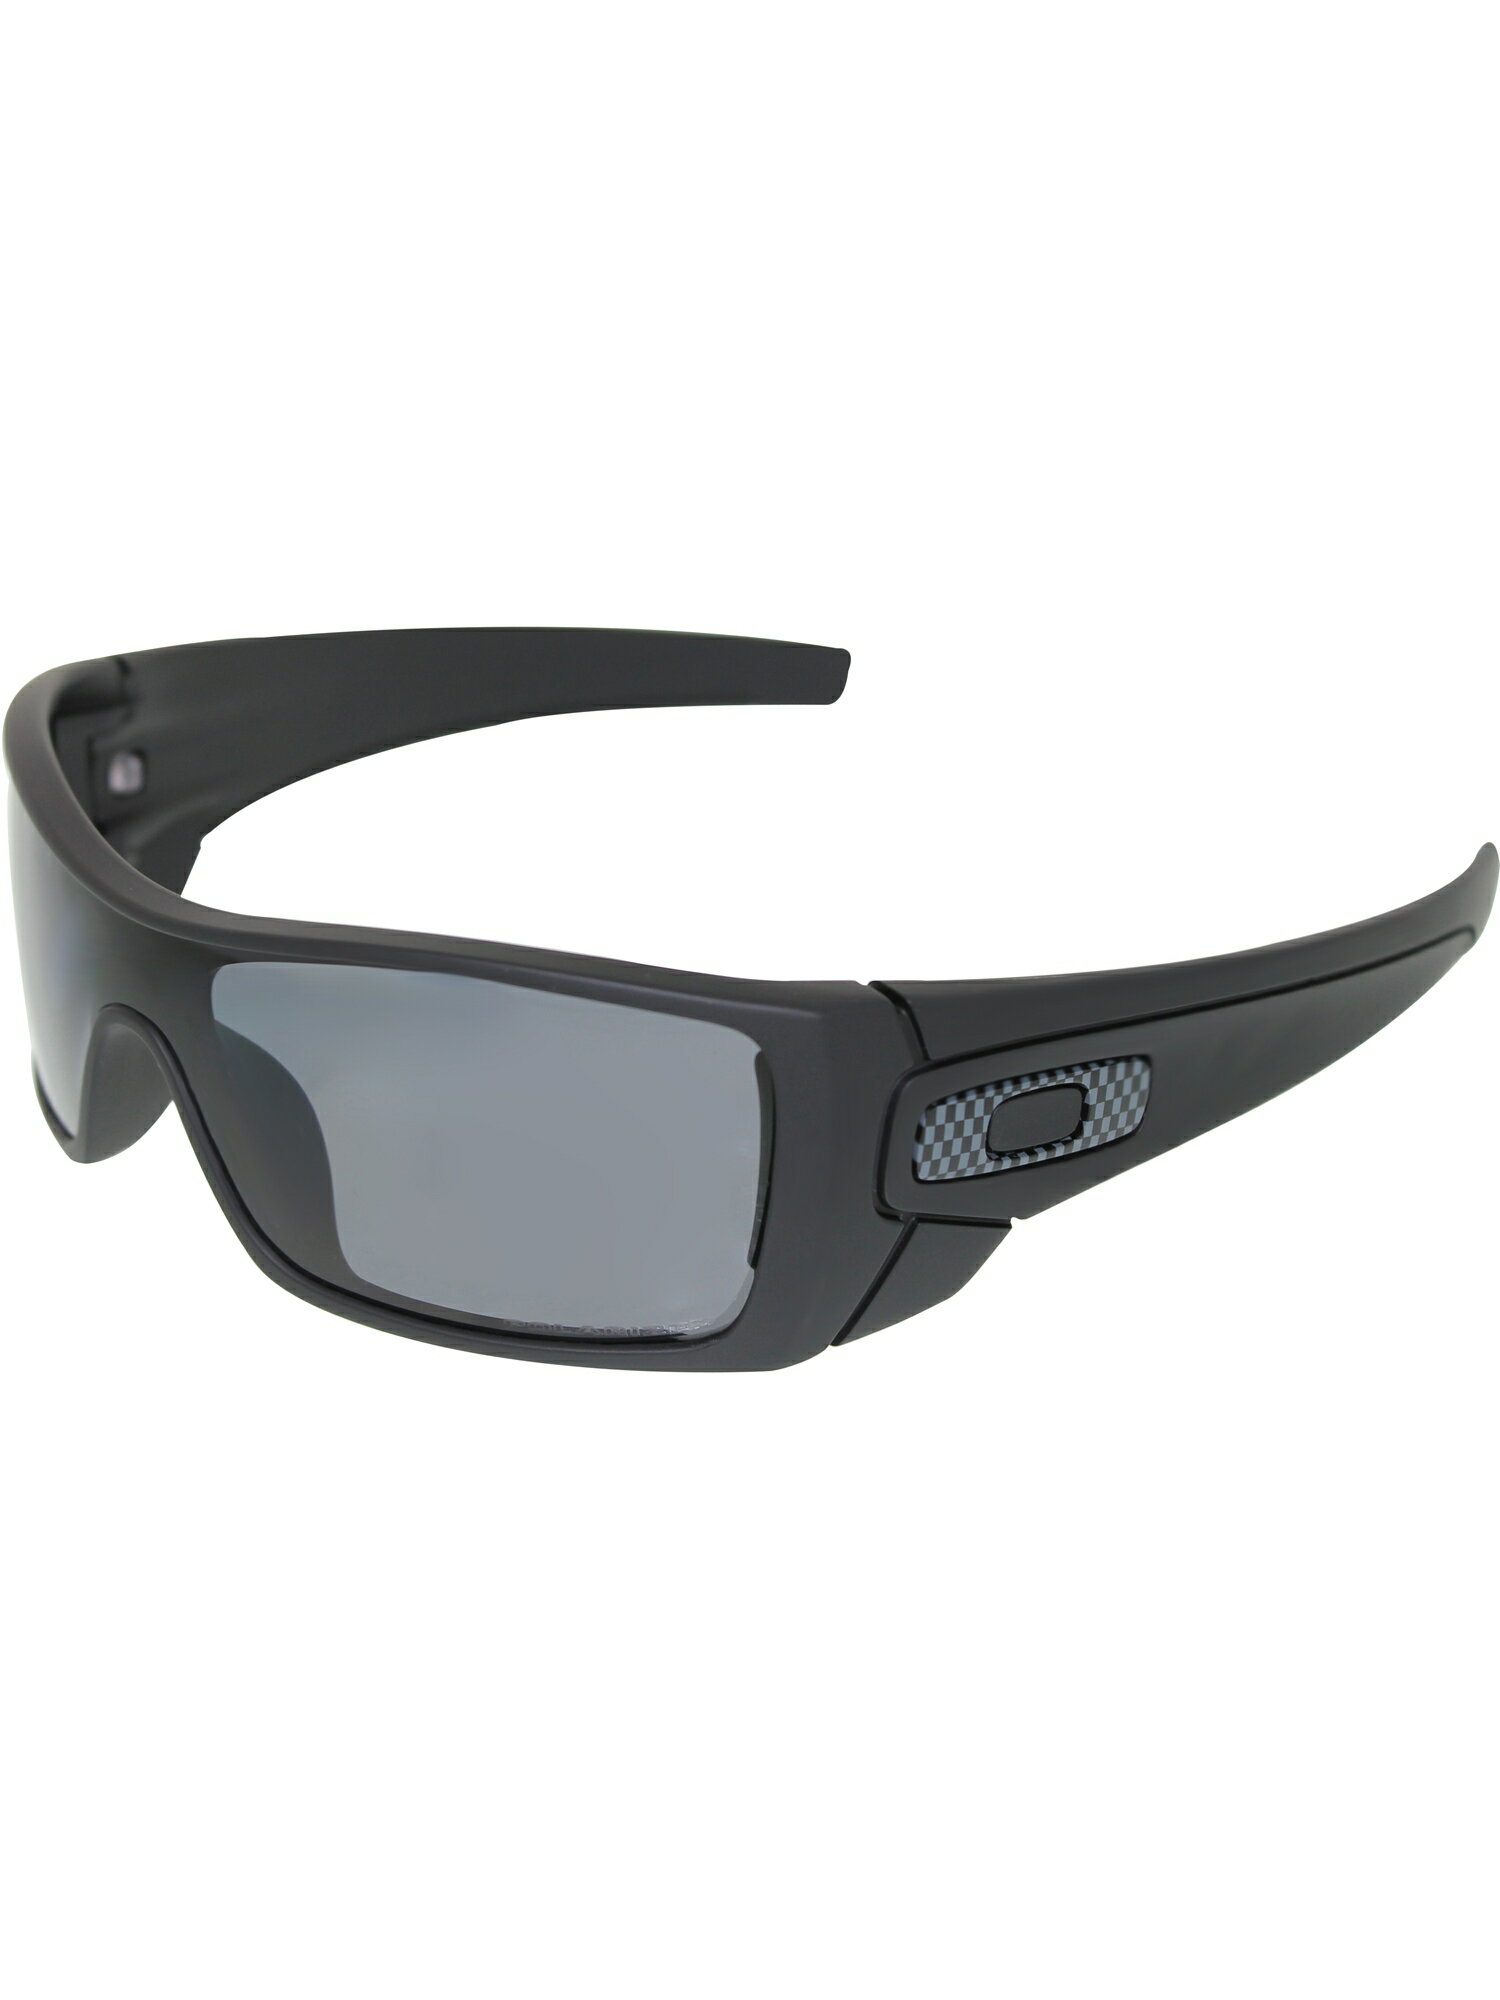 05862611dd5 AreaTrend  Oakley Men s Polarized Batwolf Sunglasses